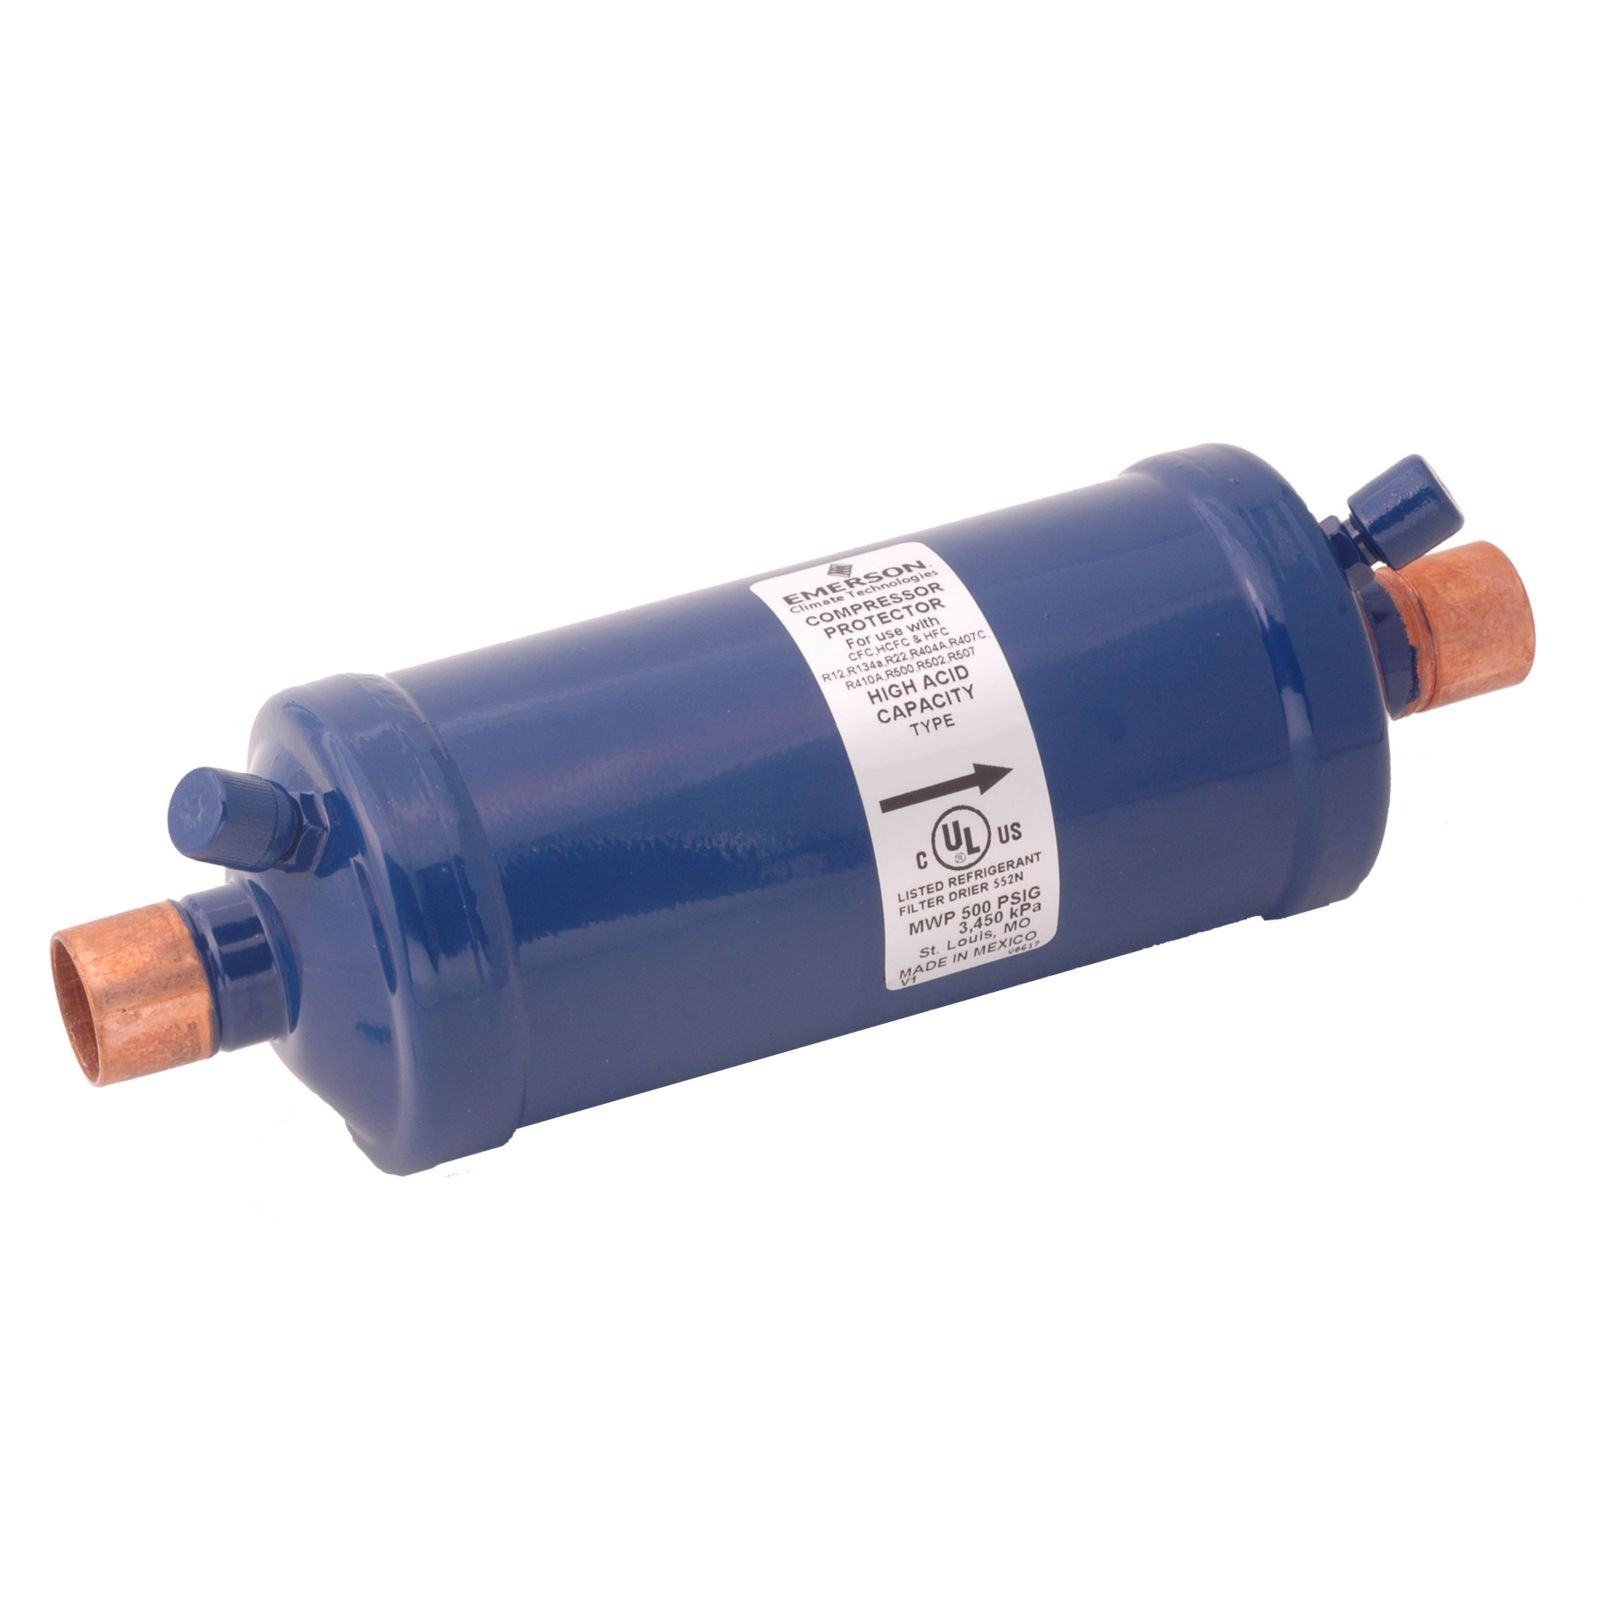 "Emerson 056509 - ASK166Swhh Dual Access Suction Line Filter Drier, 16 Cubic Inch, 3/4"" ODF Connection"